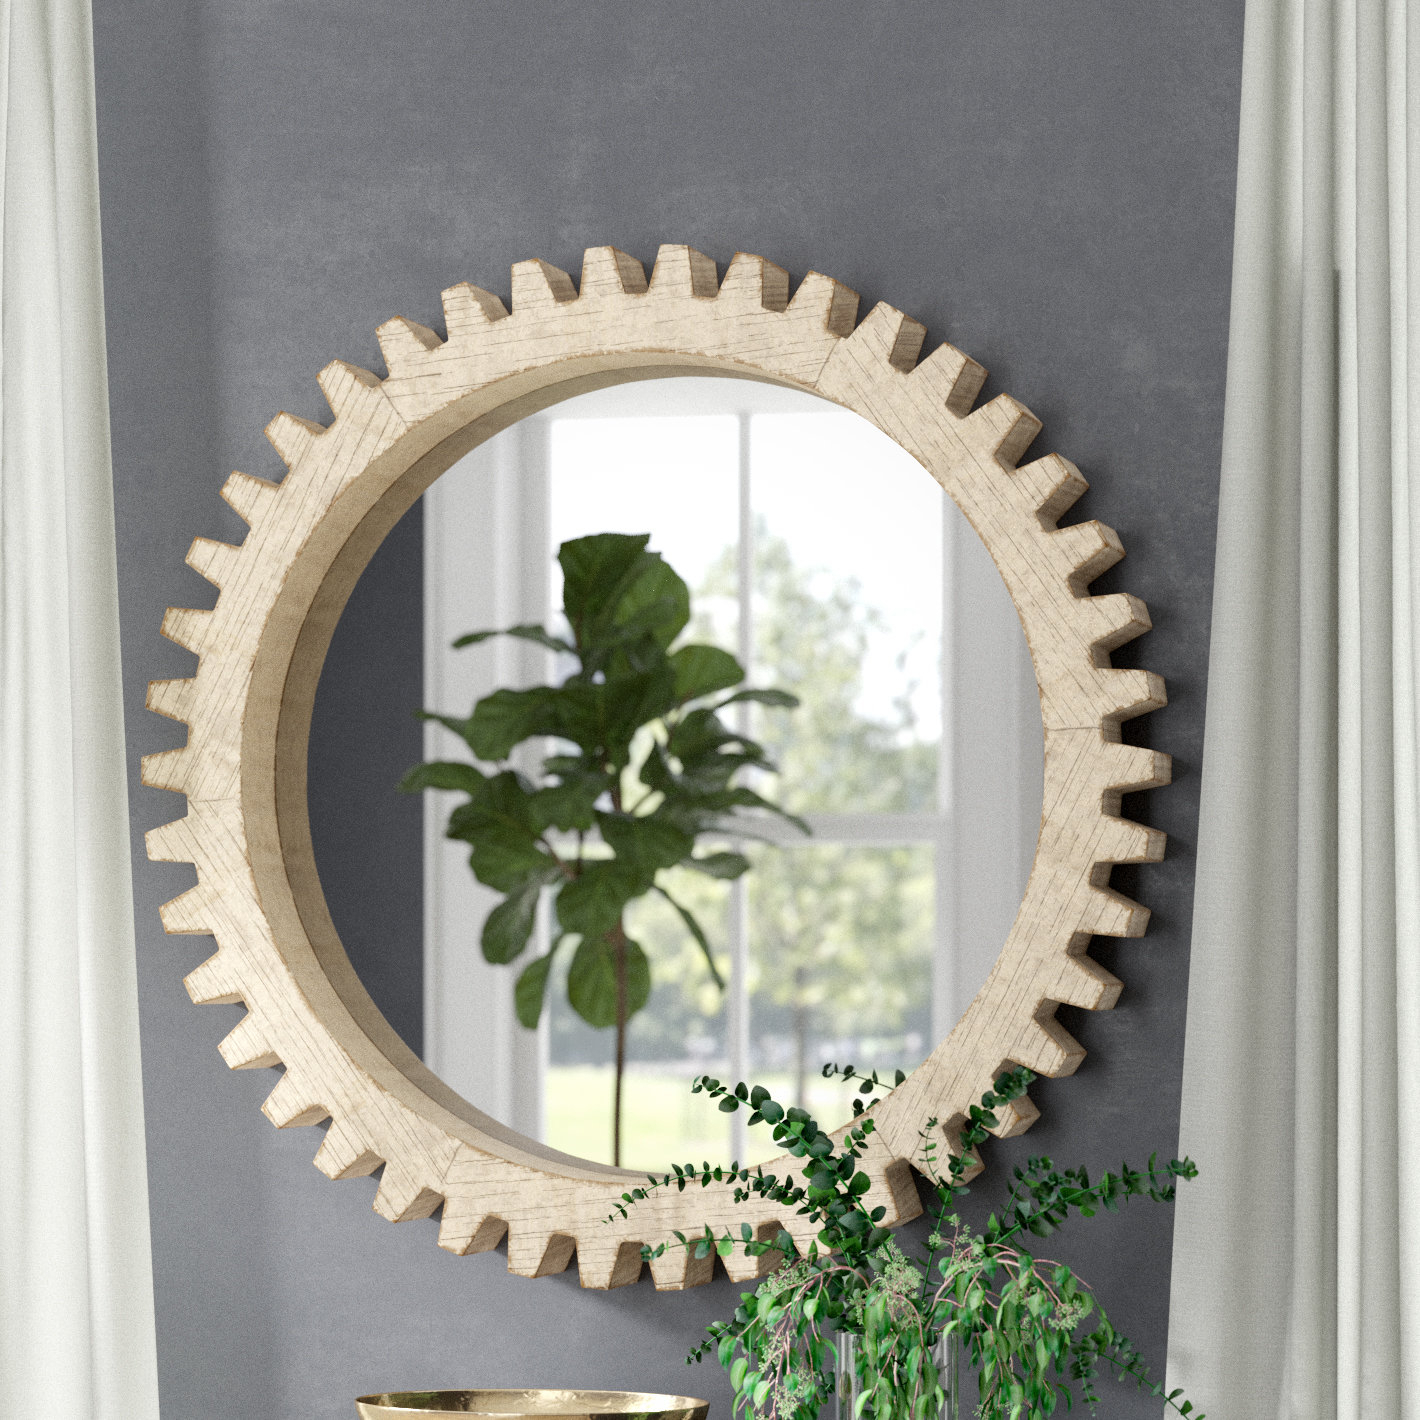 Xzavier Cog Wall Mirror Pertaining To Karn Vertical Round Resin Wall Mirrors (View 7 of 20)